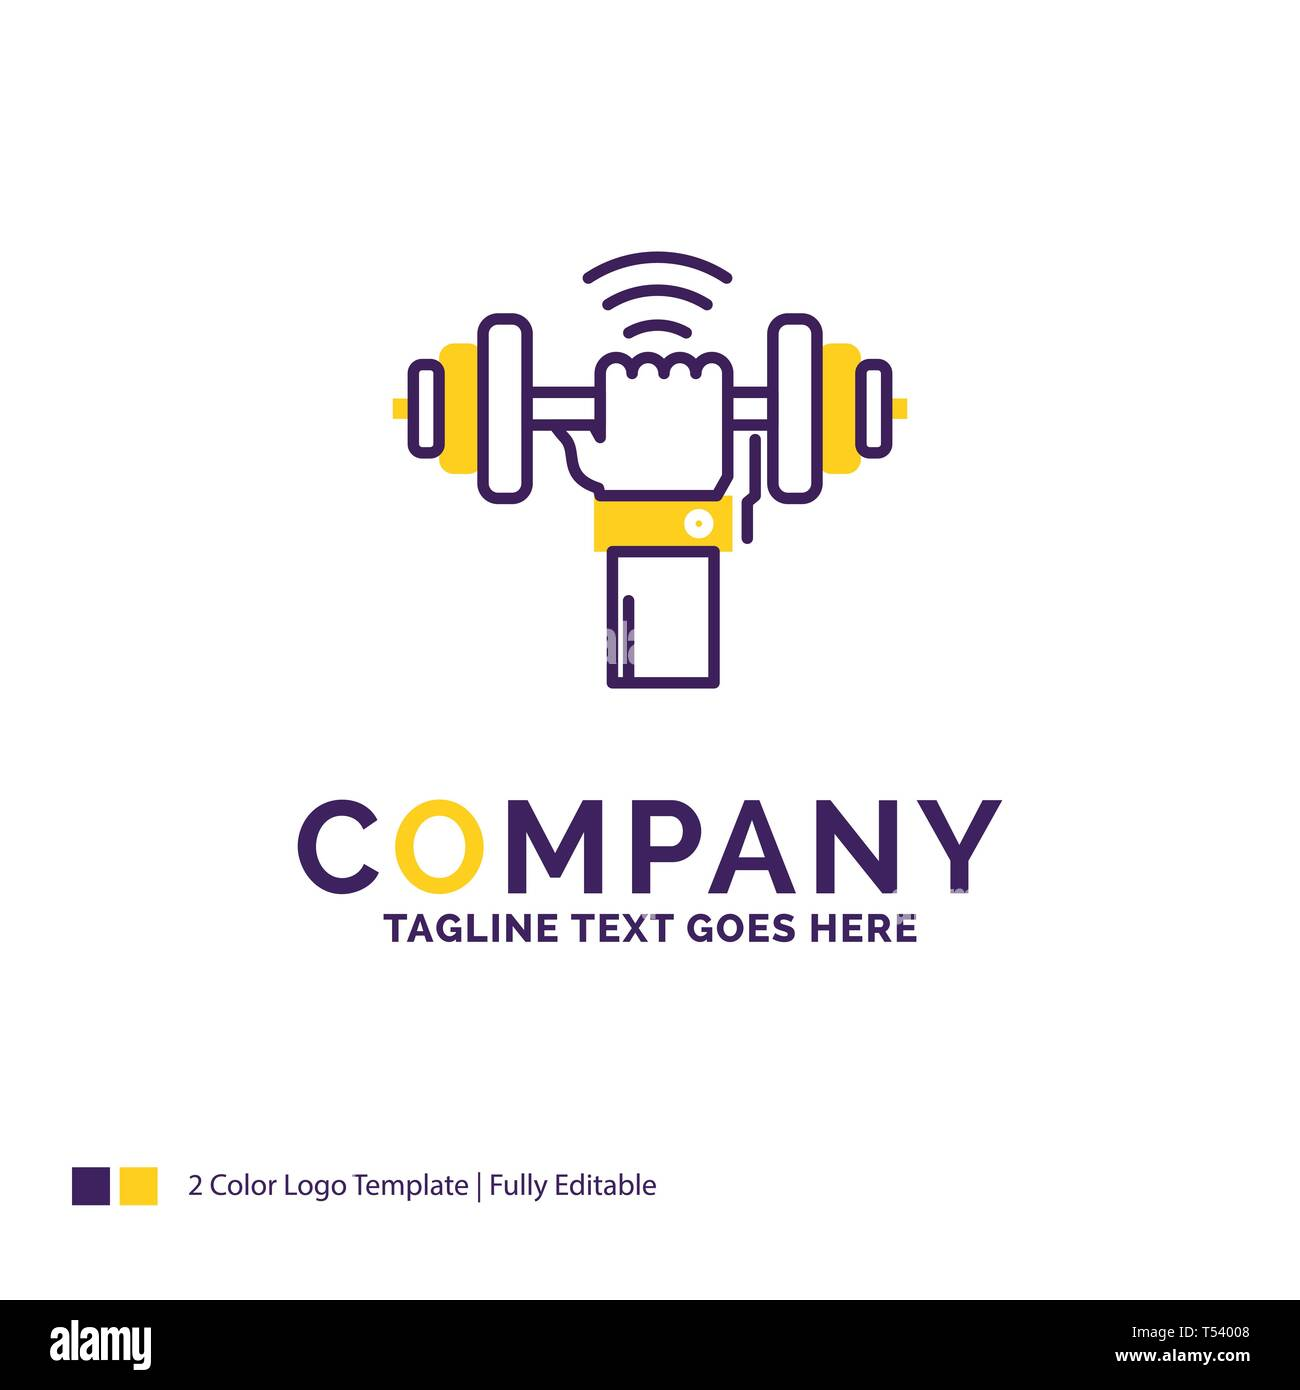 company name logo design for dumbbell gain lifting power sport purple and yellow brand name design with place for tagline creative logo template stock vector image art alamy alamy